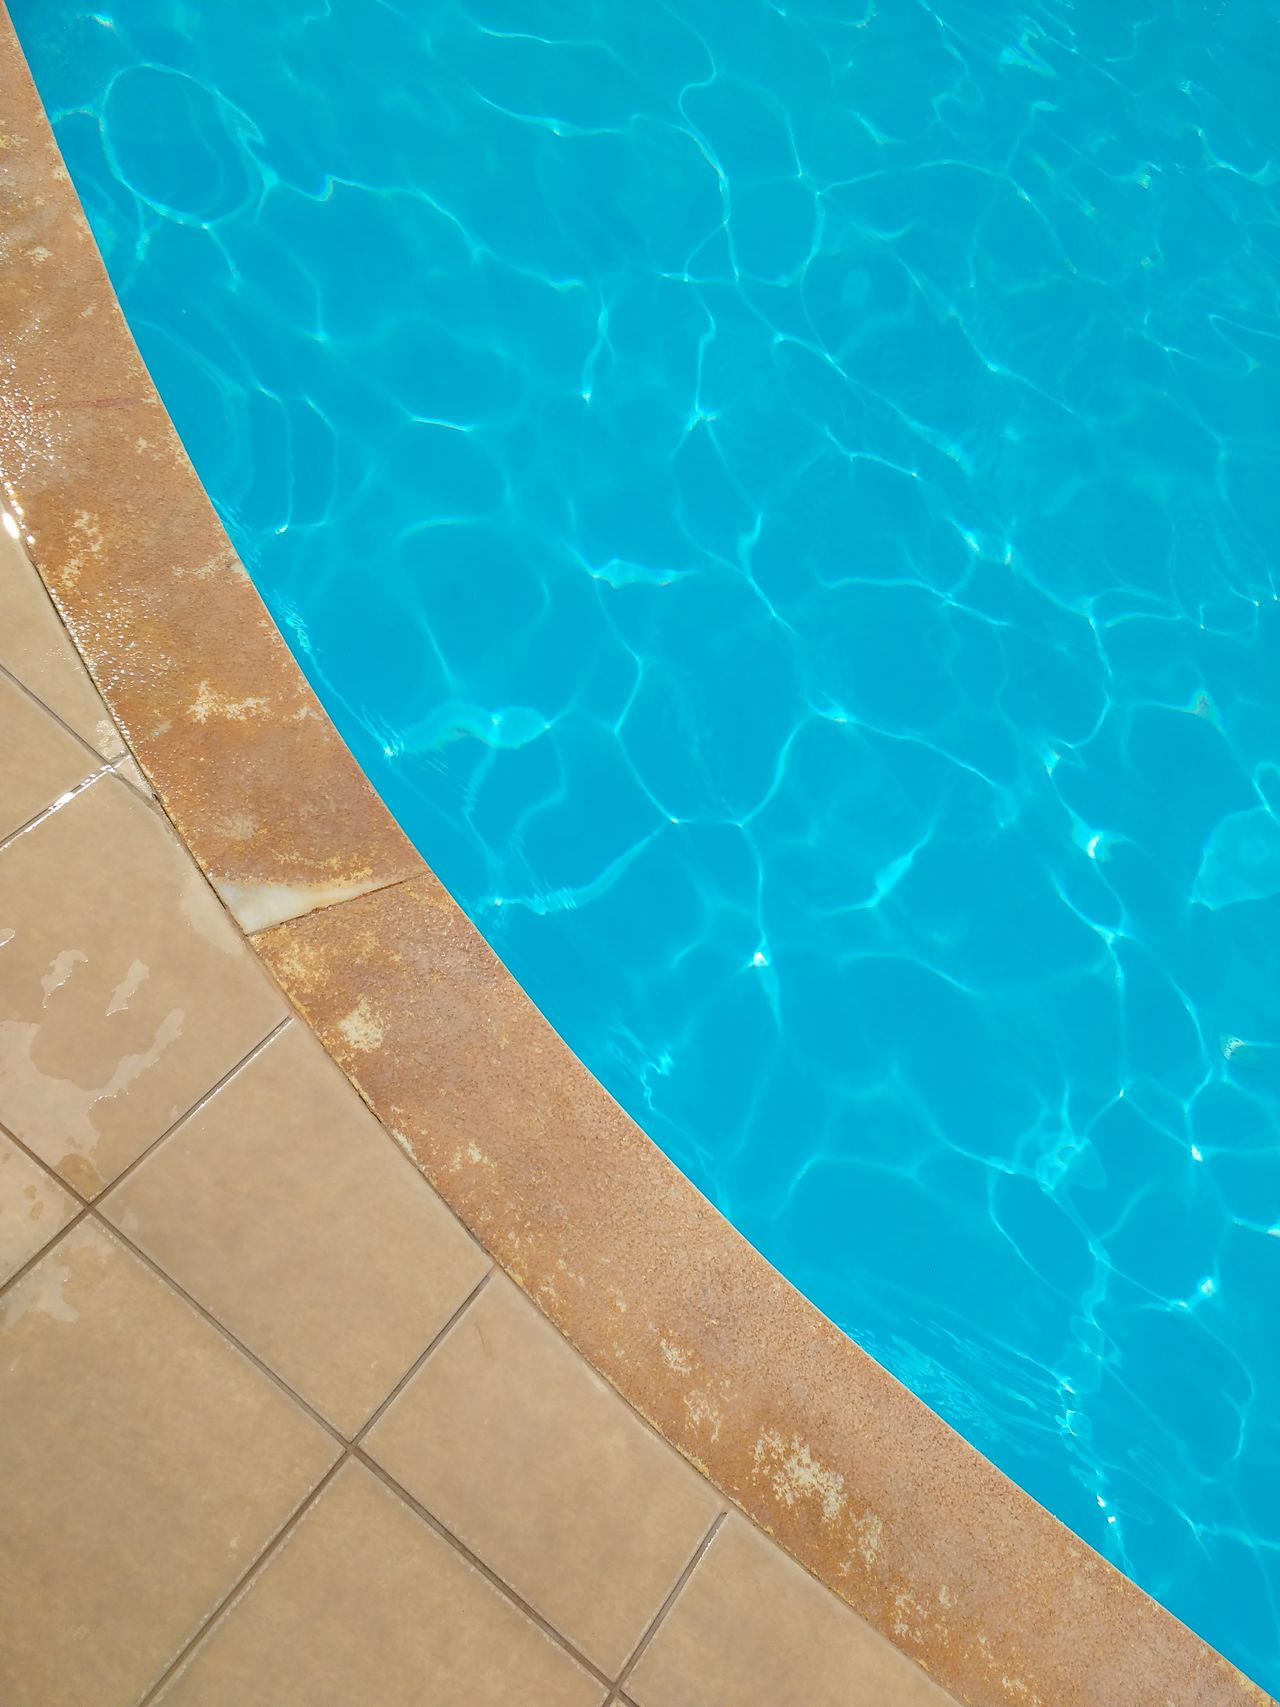 Water Blue Swimming Pool Sea Backgrounds Full Frame High Angle View Tile Rippled Day Vibrant Color Summer Holidays Summertime Greece Turquoise Colored Outdoors Nature Purity No People Water Surface Summer Views